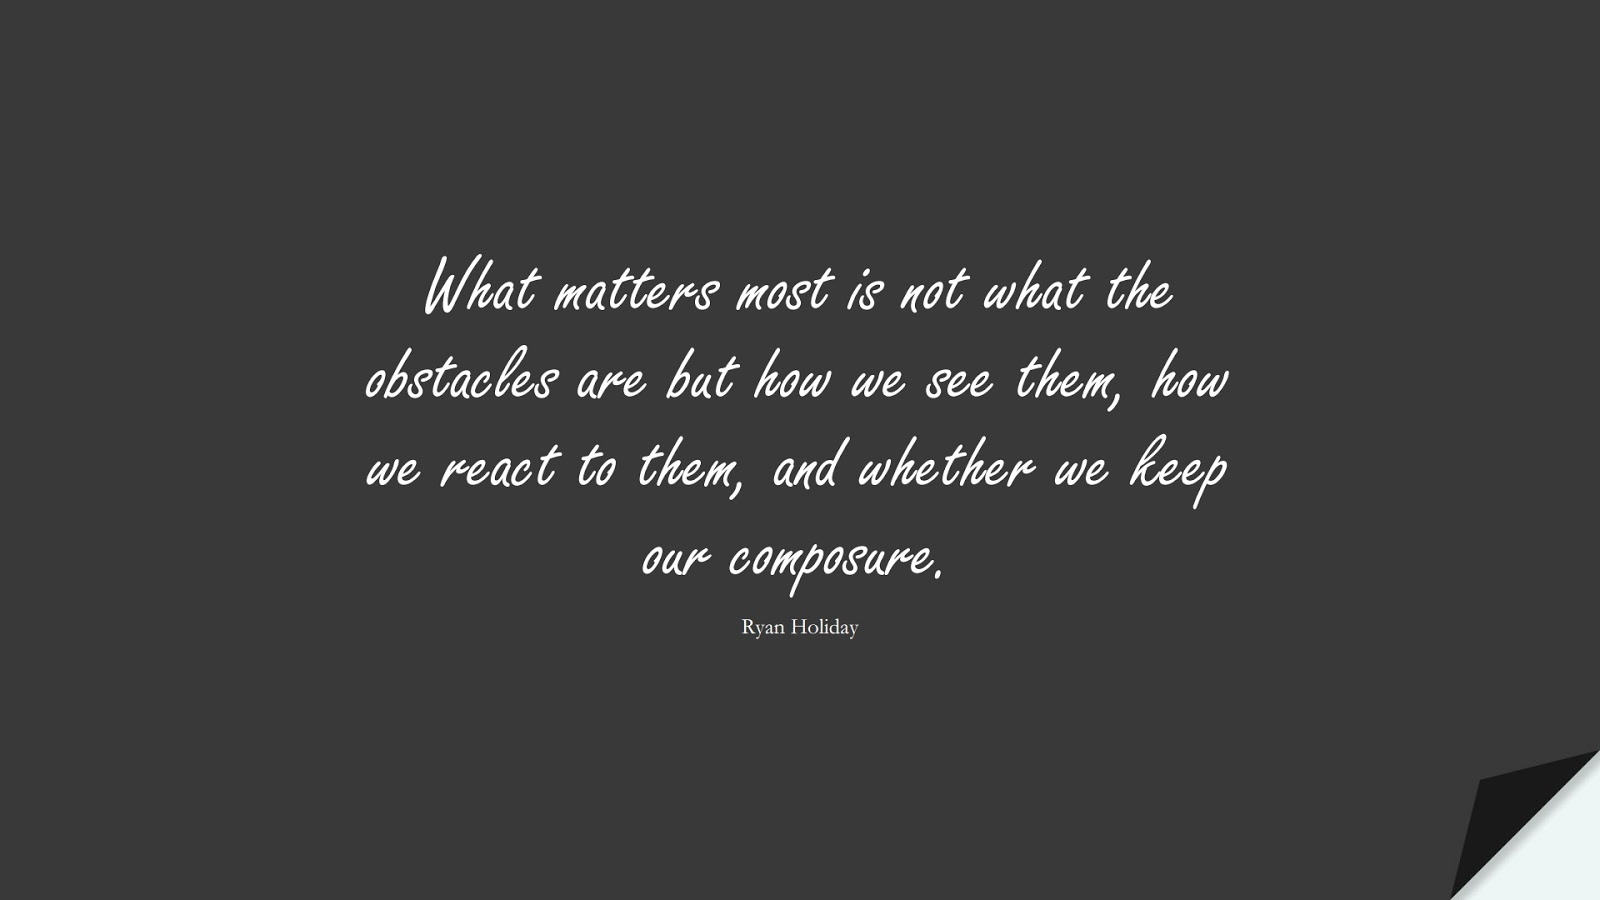 What matters most is not what the obstacles are but how we see them, how we react to them, and whether we keep our composure. (Ryan Holiday);  #CourageQuotes